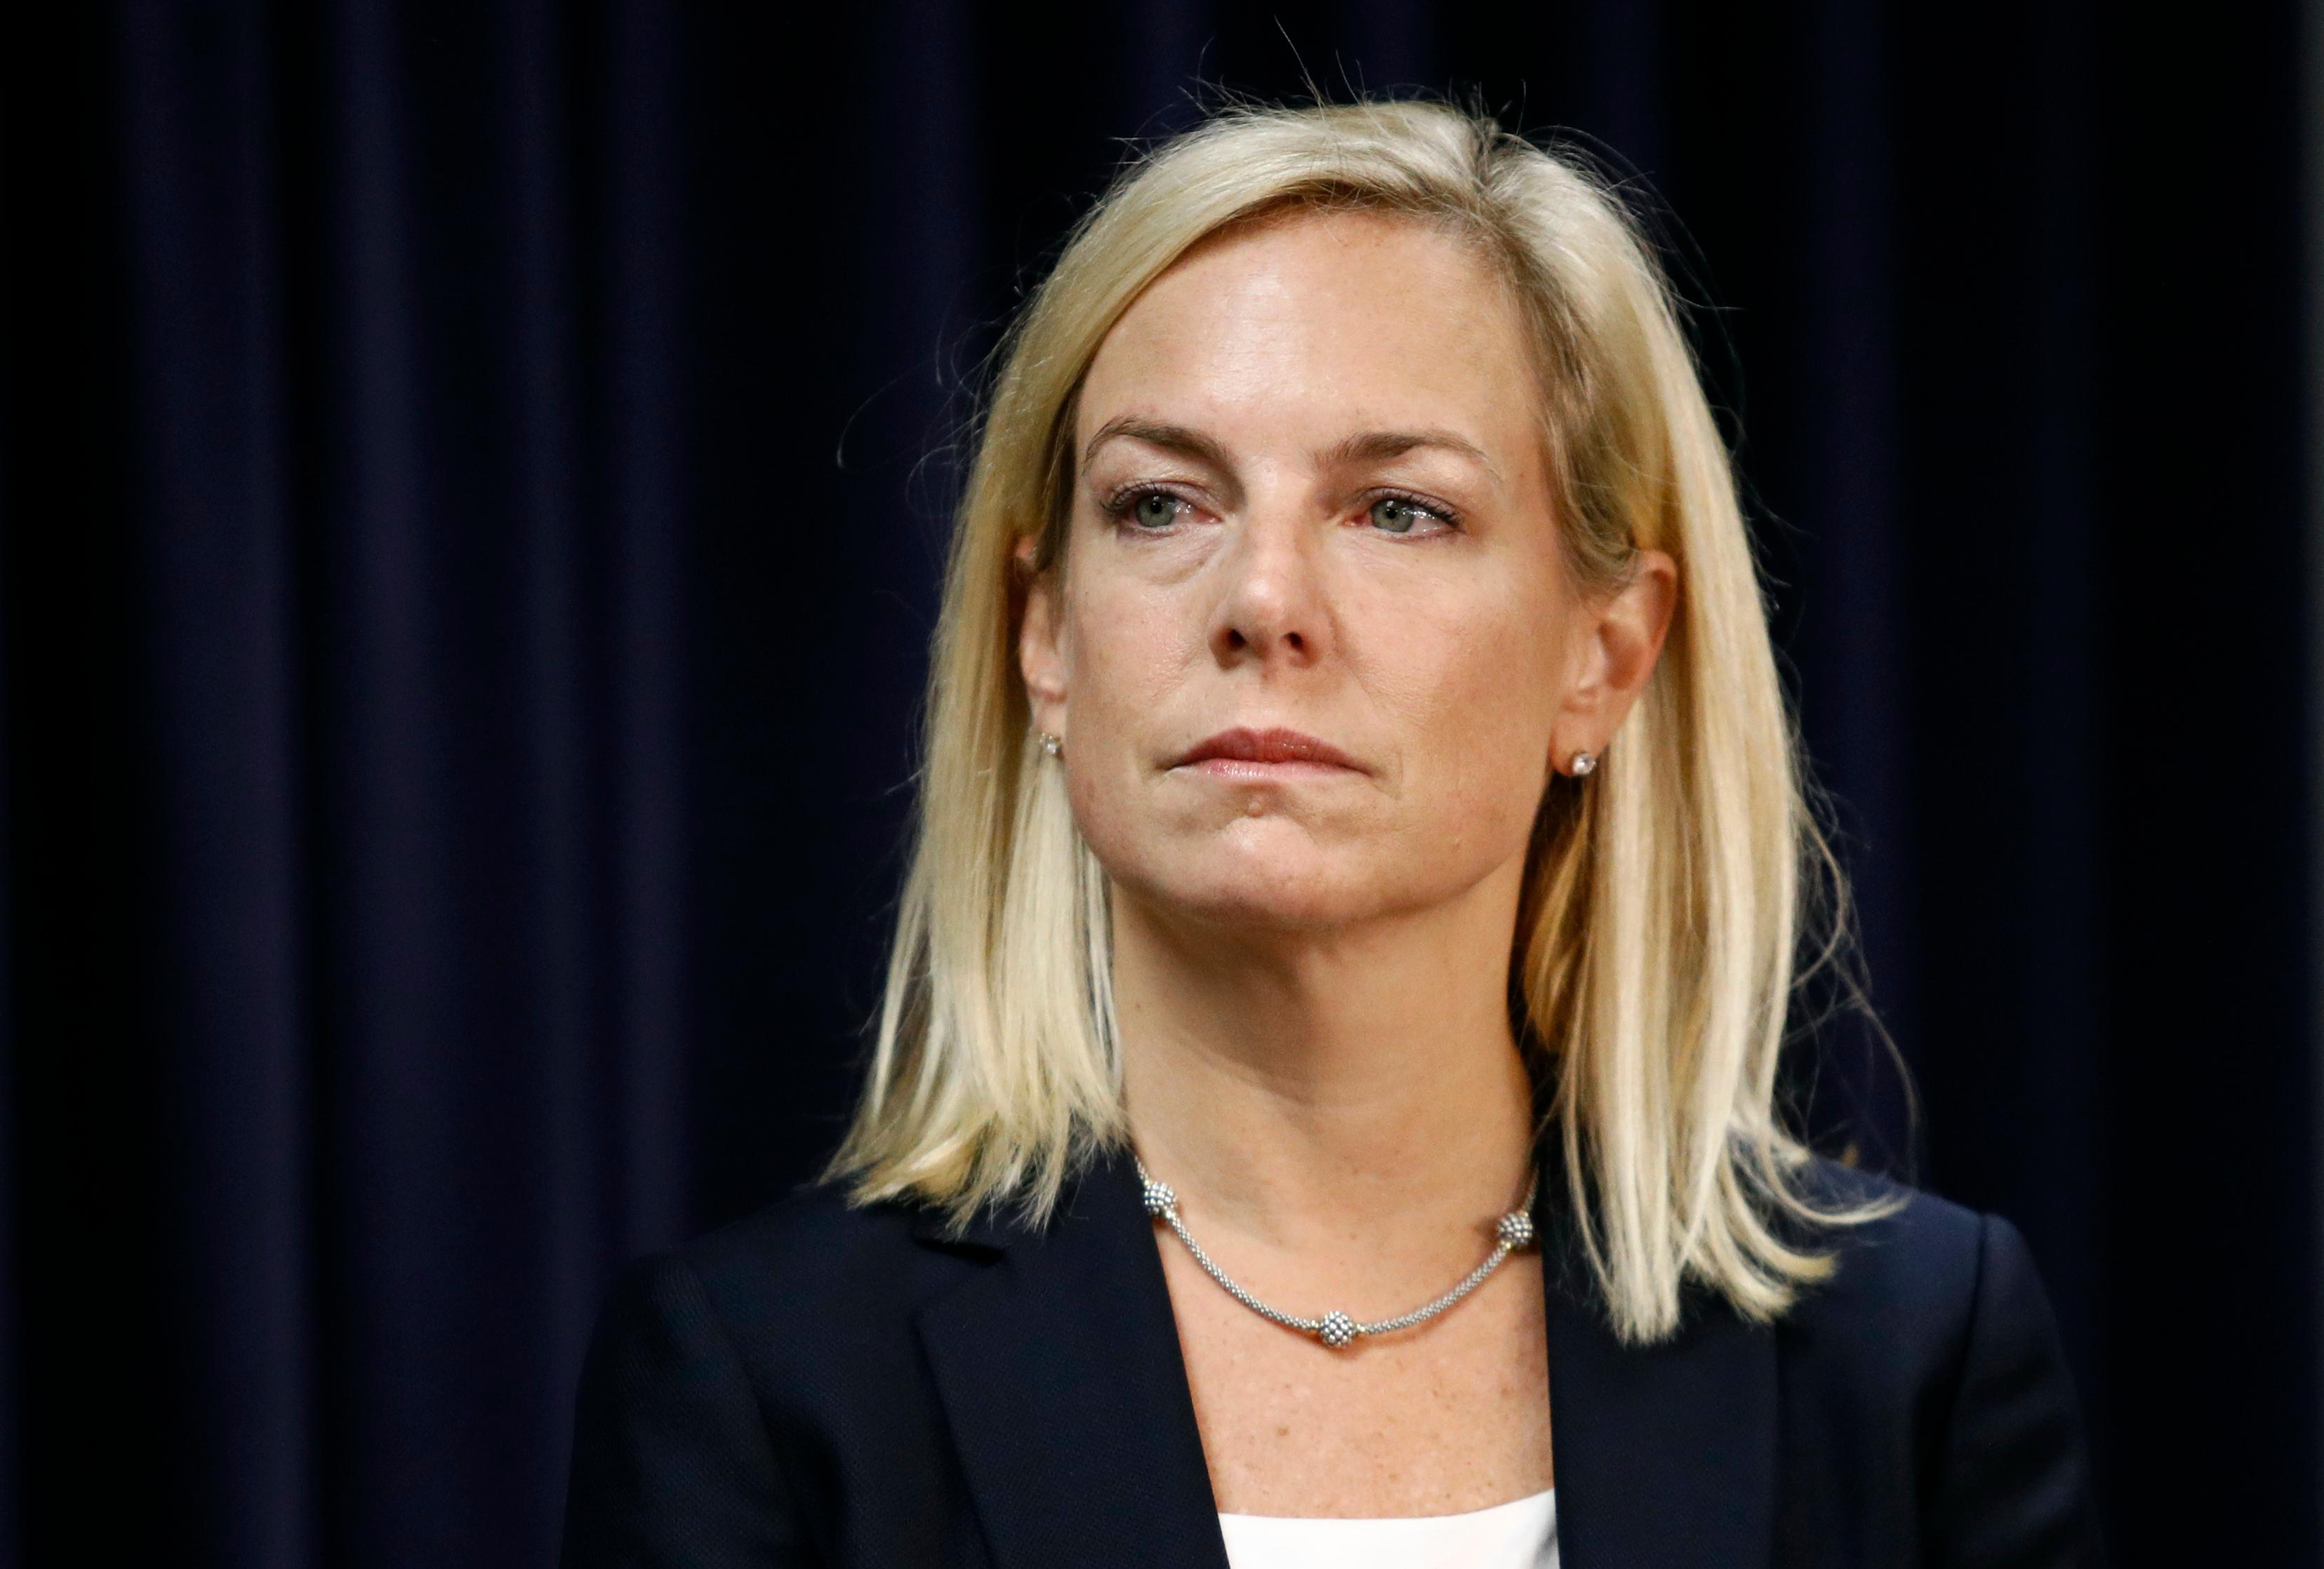 Secretary of Homeland Security Kirstjen Nielsen listens as Attorney General Jeff Sessions speaks at a news conference in Baltimore, Tuesday, Dec. 12, 2017, to announce efforts to combat the MS-13 street gang with law enforcement and immigration actions. (AP Photo/Patrick Semansky)